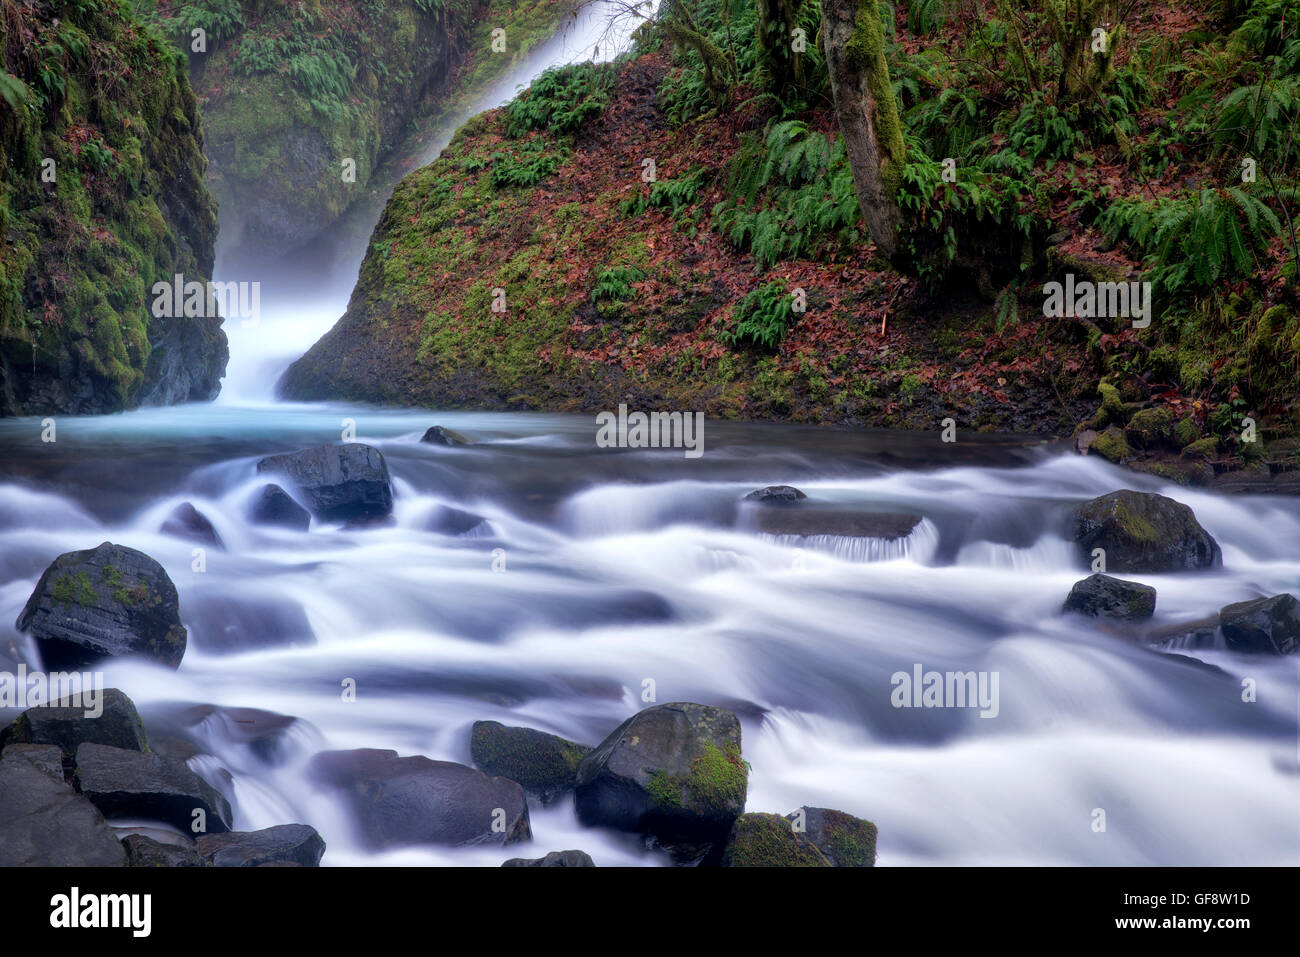 Bridal Veil Falls. Columbia River Gorge National Scenic Area, Oregon - Stock Image